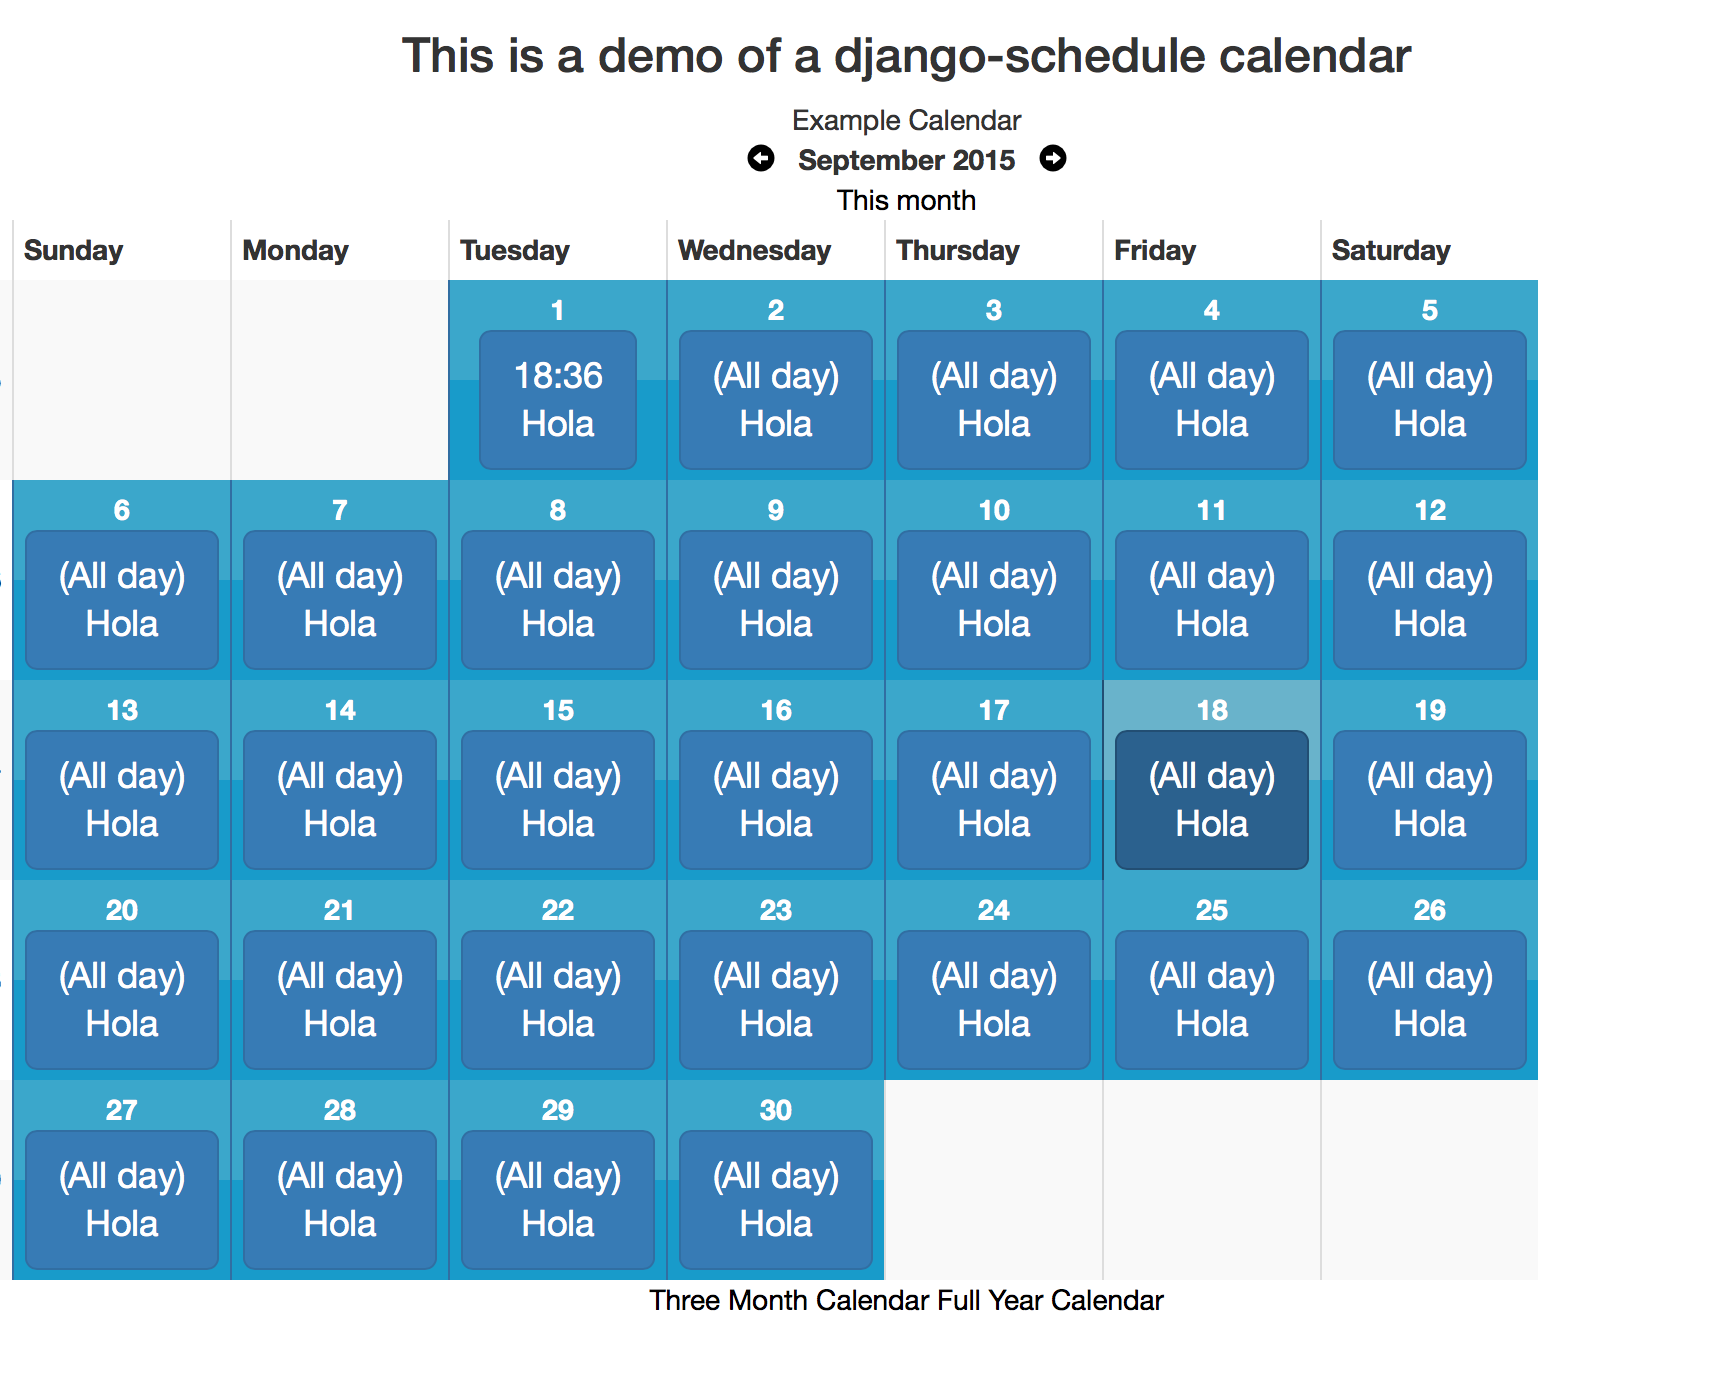 GitHub - llazzaro/django-scheduler: A calendaring app for Django